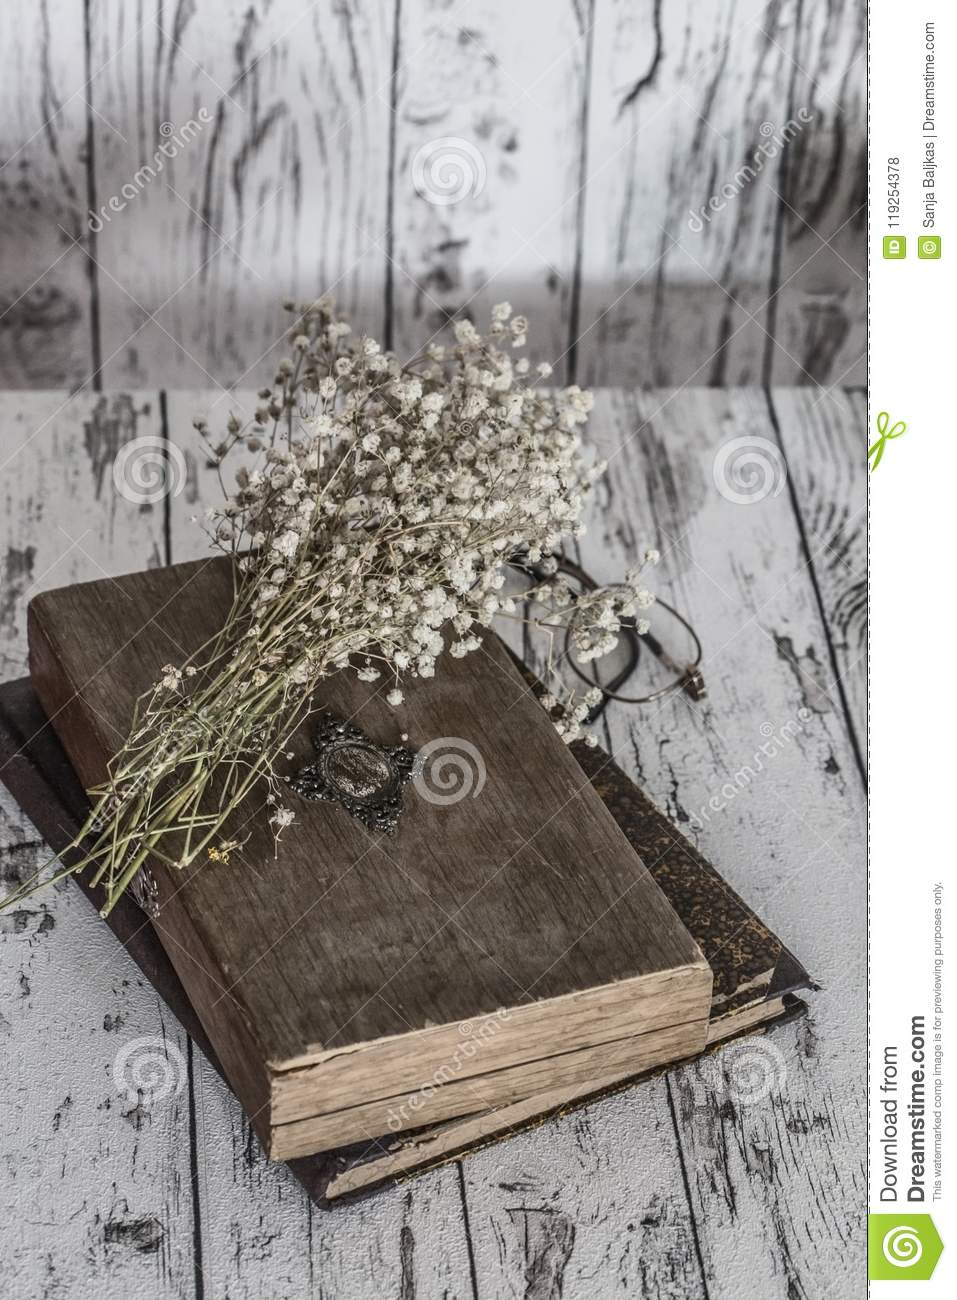 Vintage Still Life Books Glasses And White Dried Flowers Stock